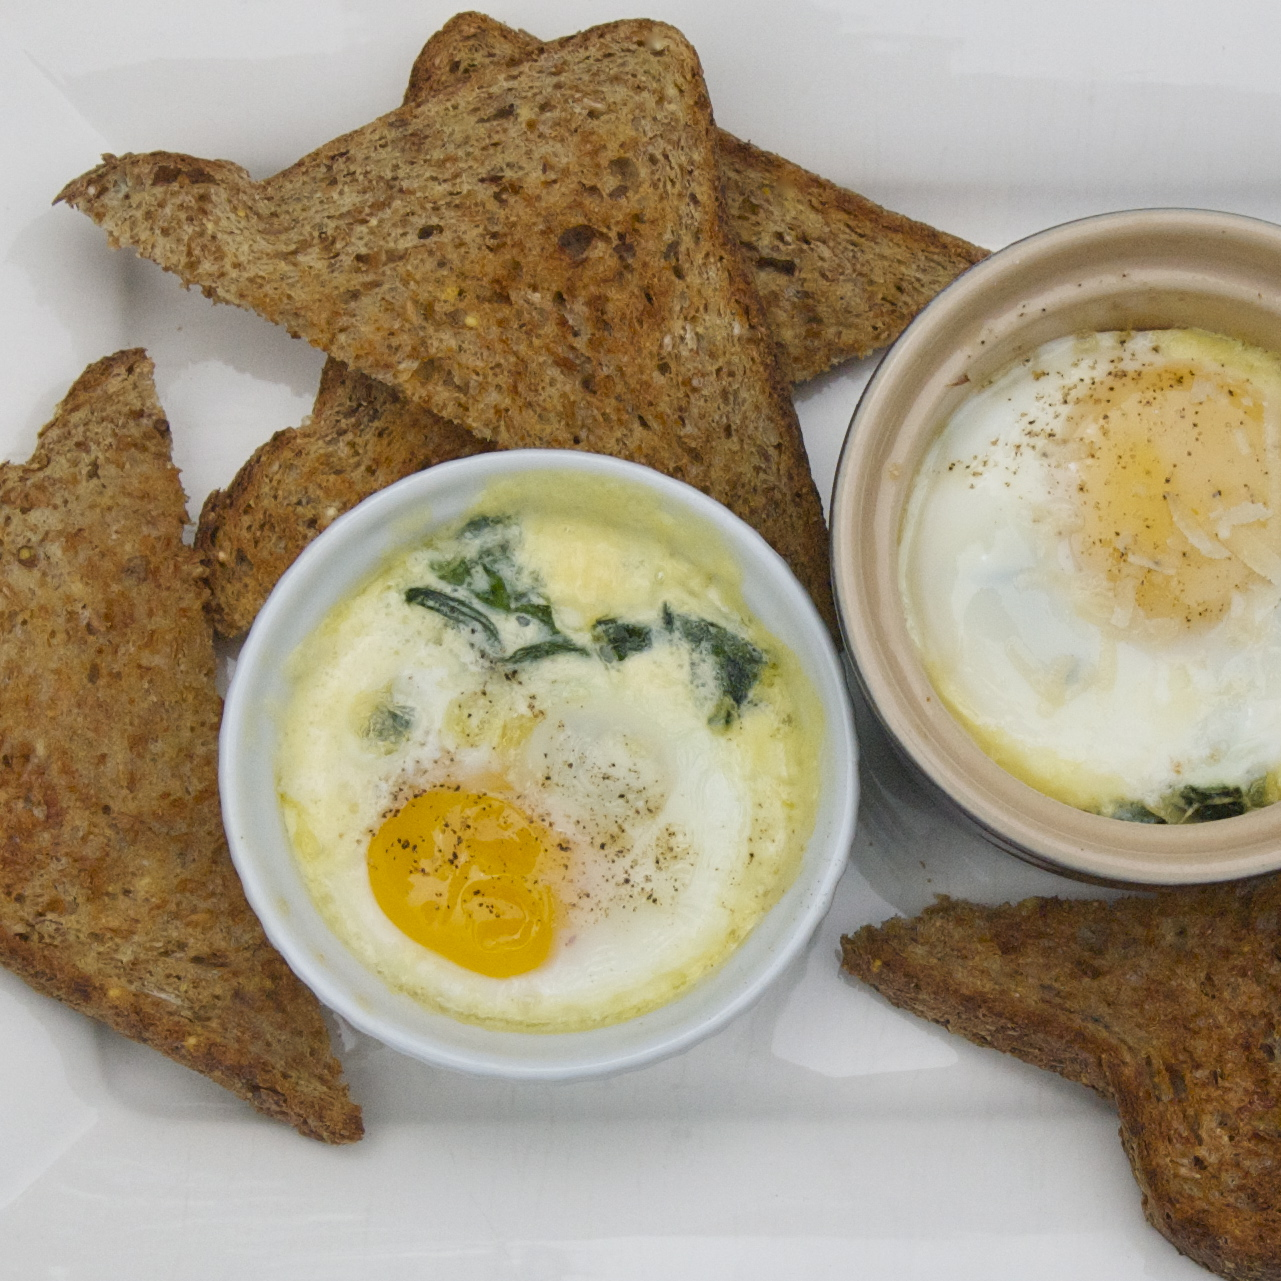 Ramekin-Baked Eggs with Spinach and Cream